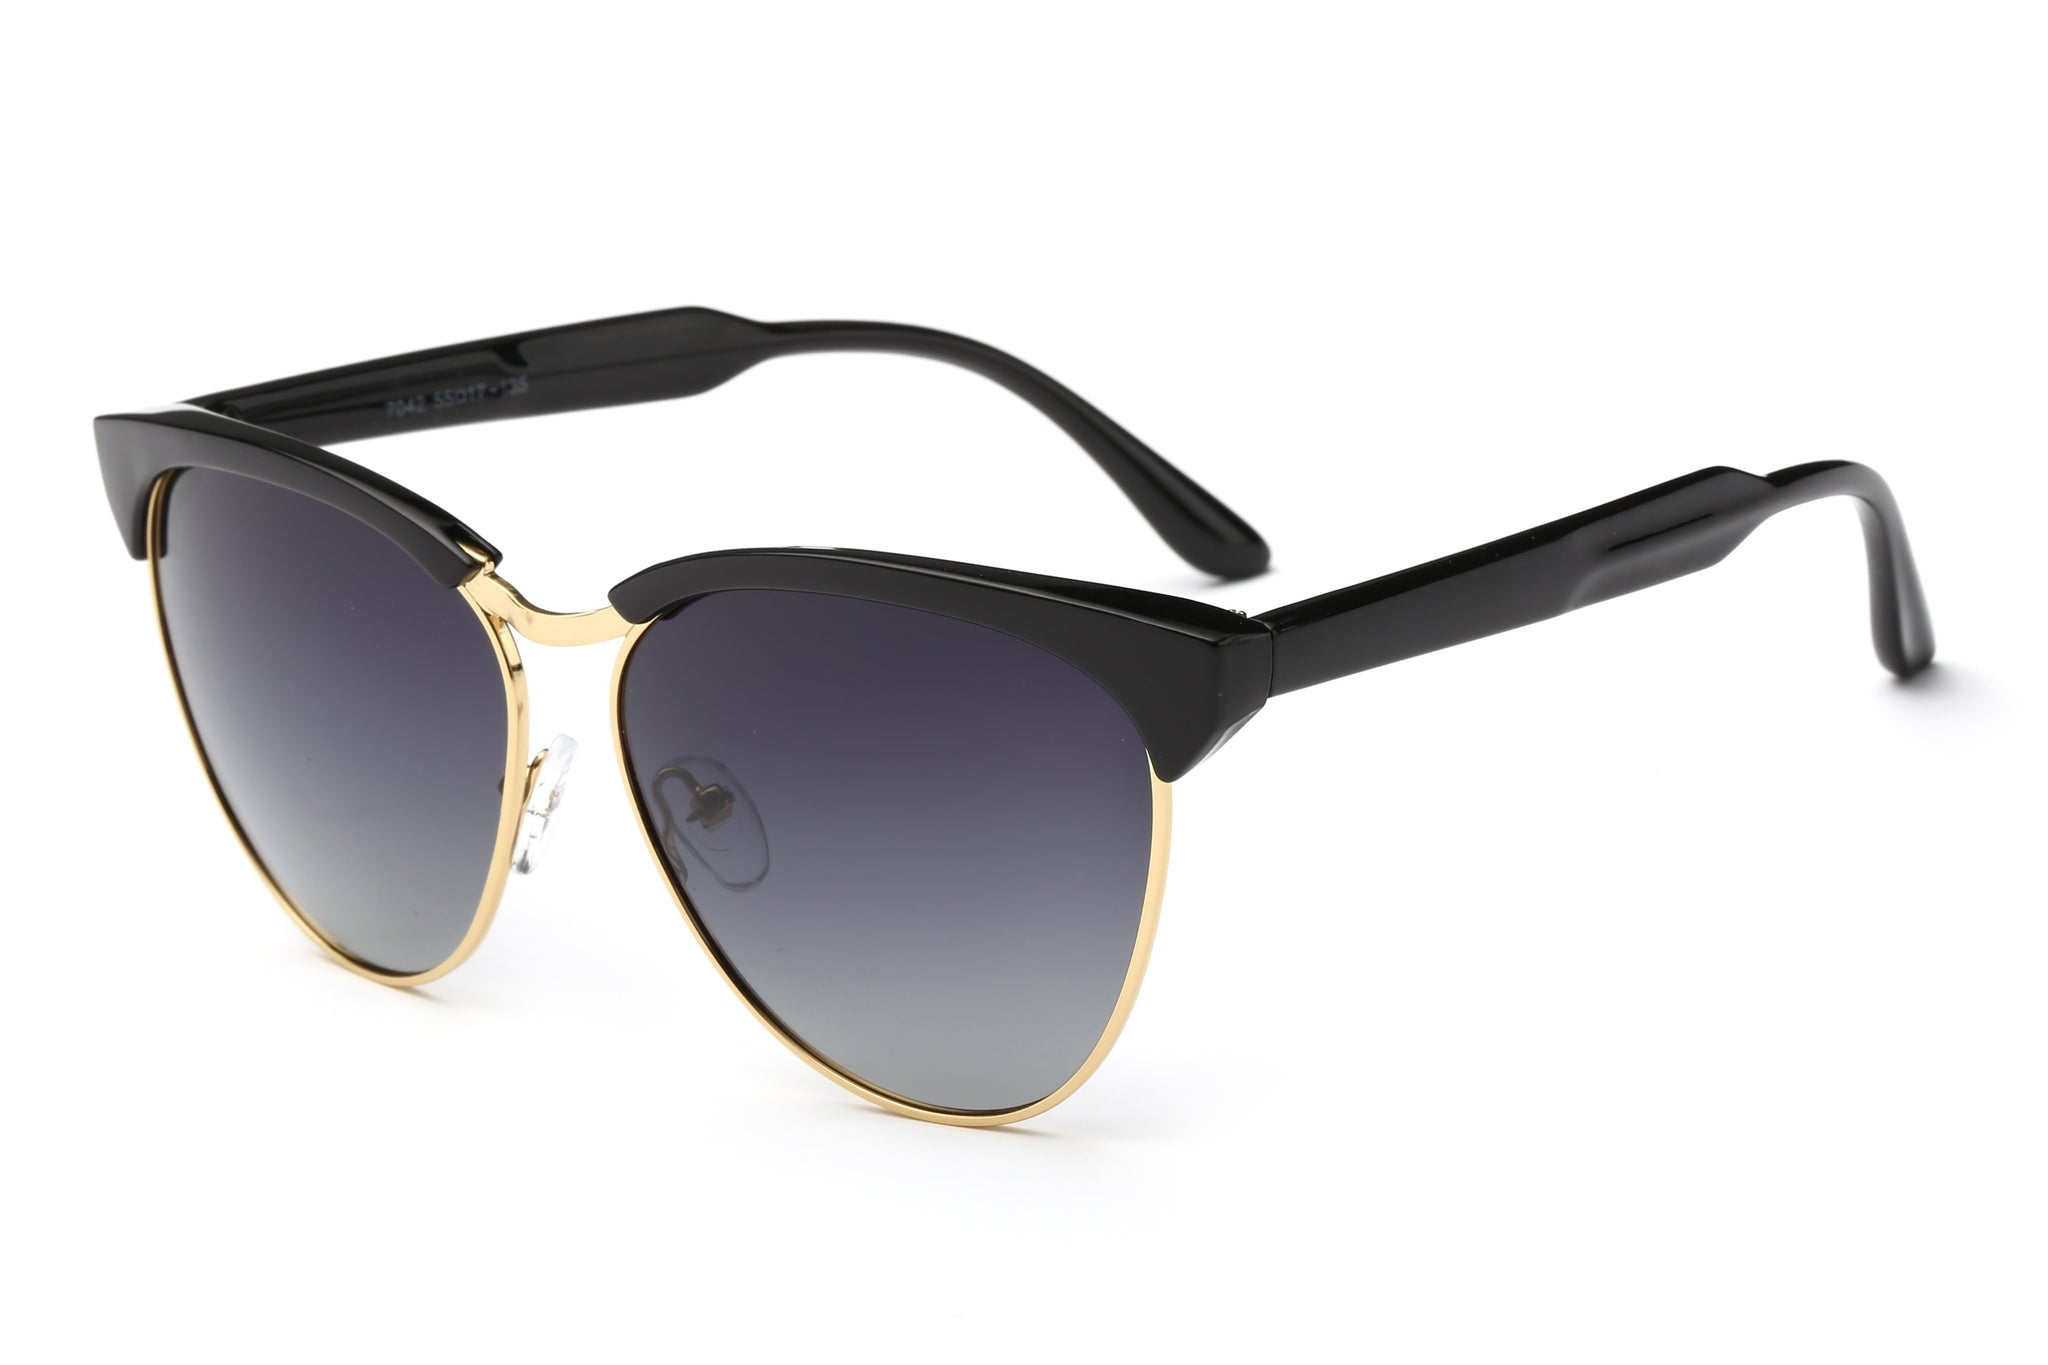 9904 - Teardrop Shaped Gradient Lens Retro Club Sunglasses